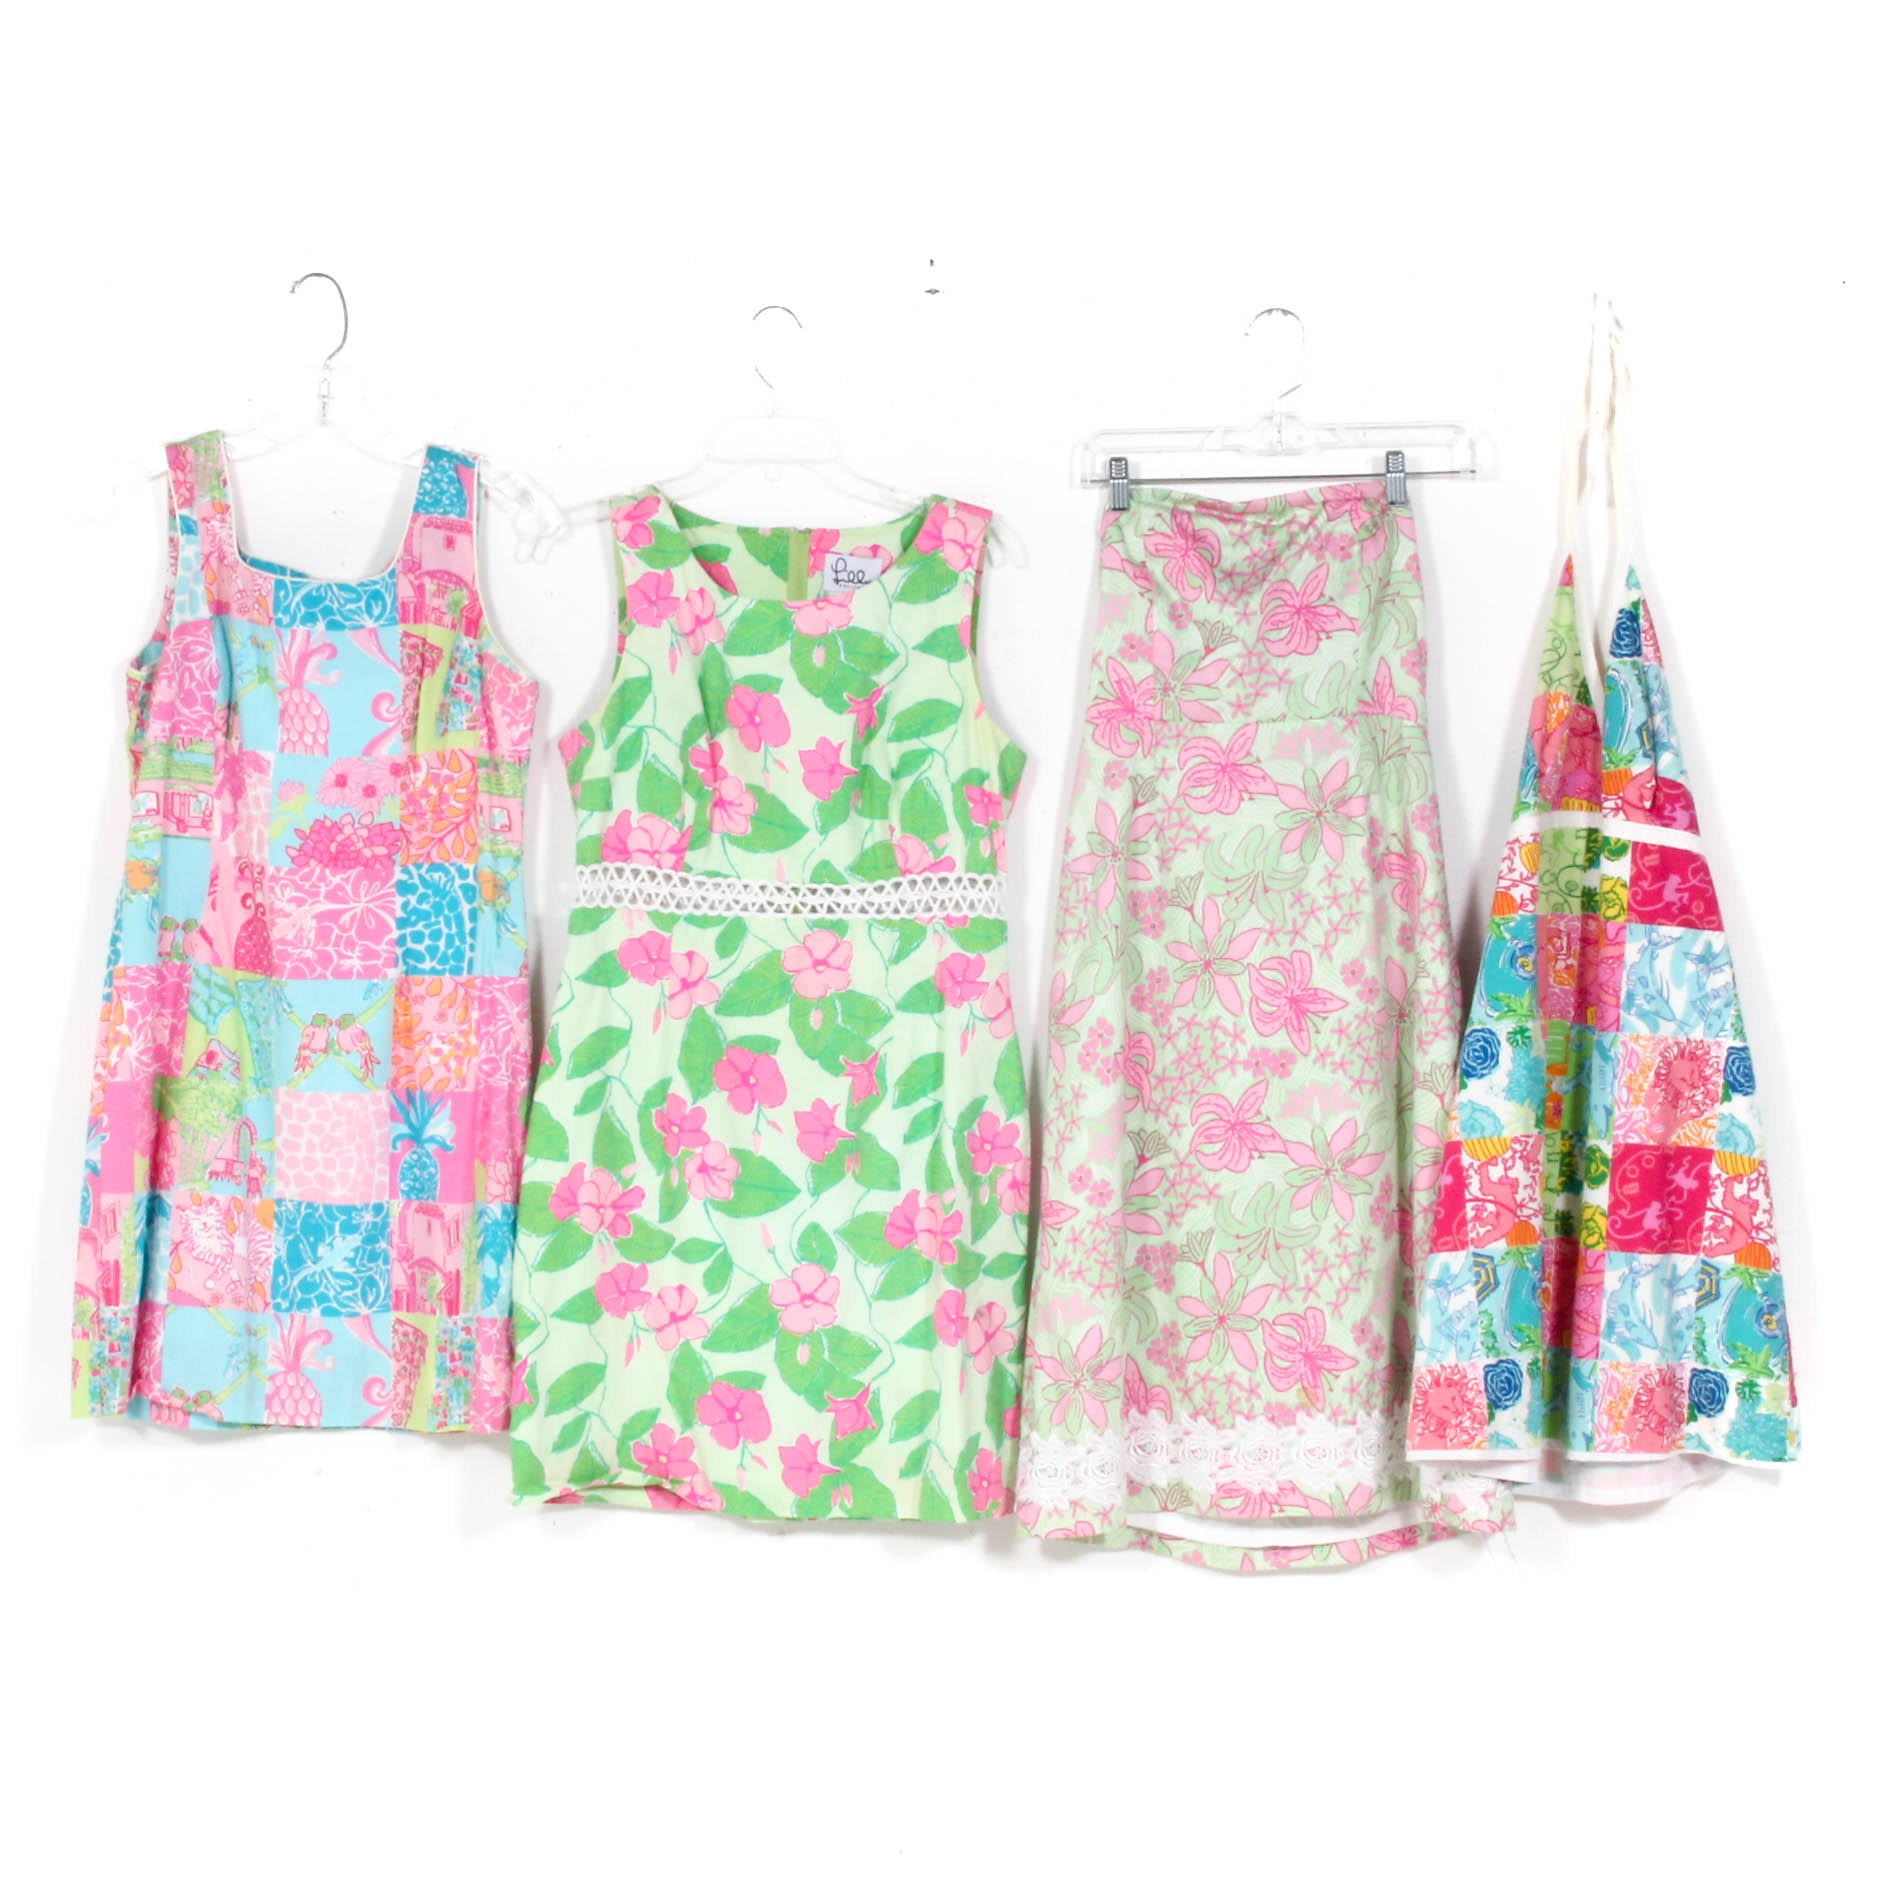 Women's Lilly Pulitzer Cotton Sundresses